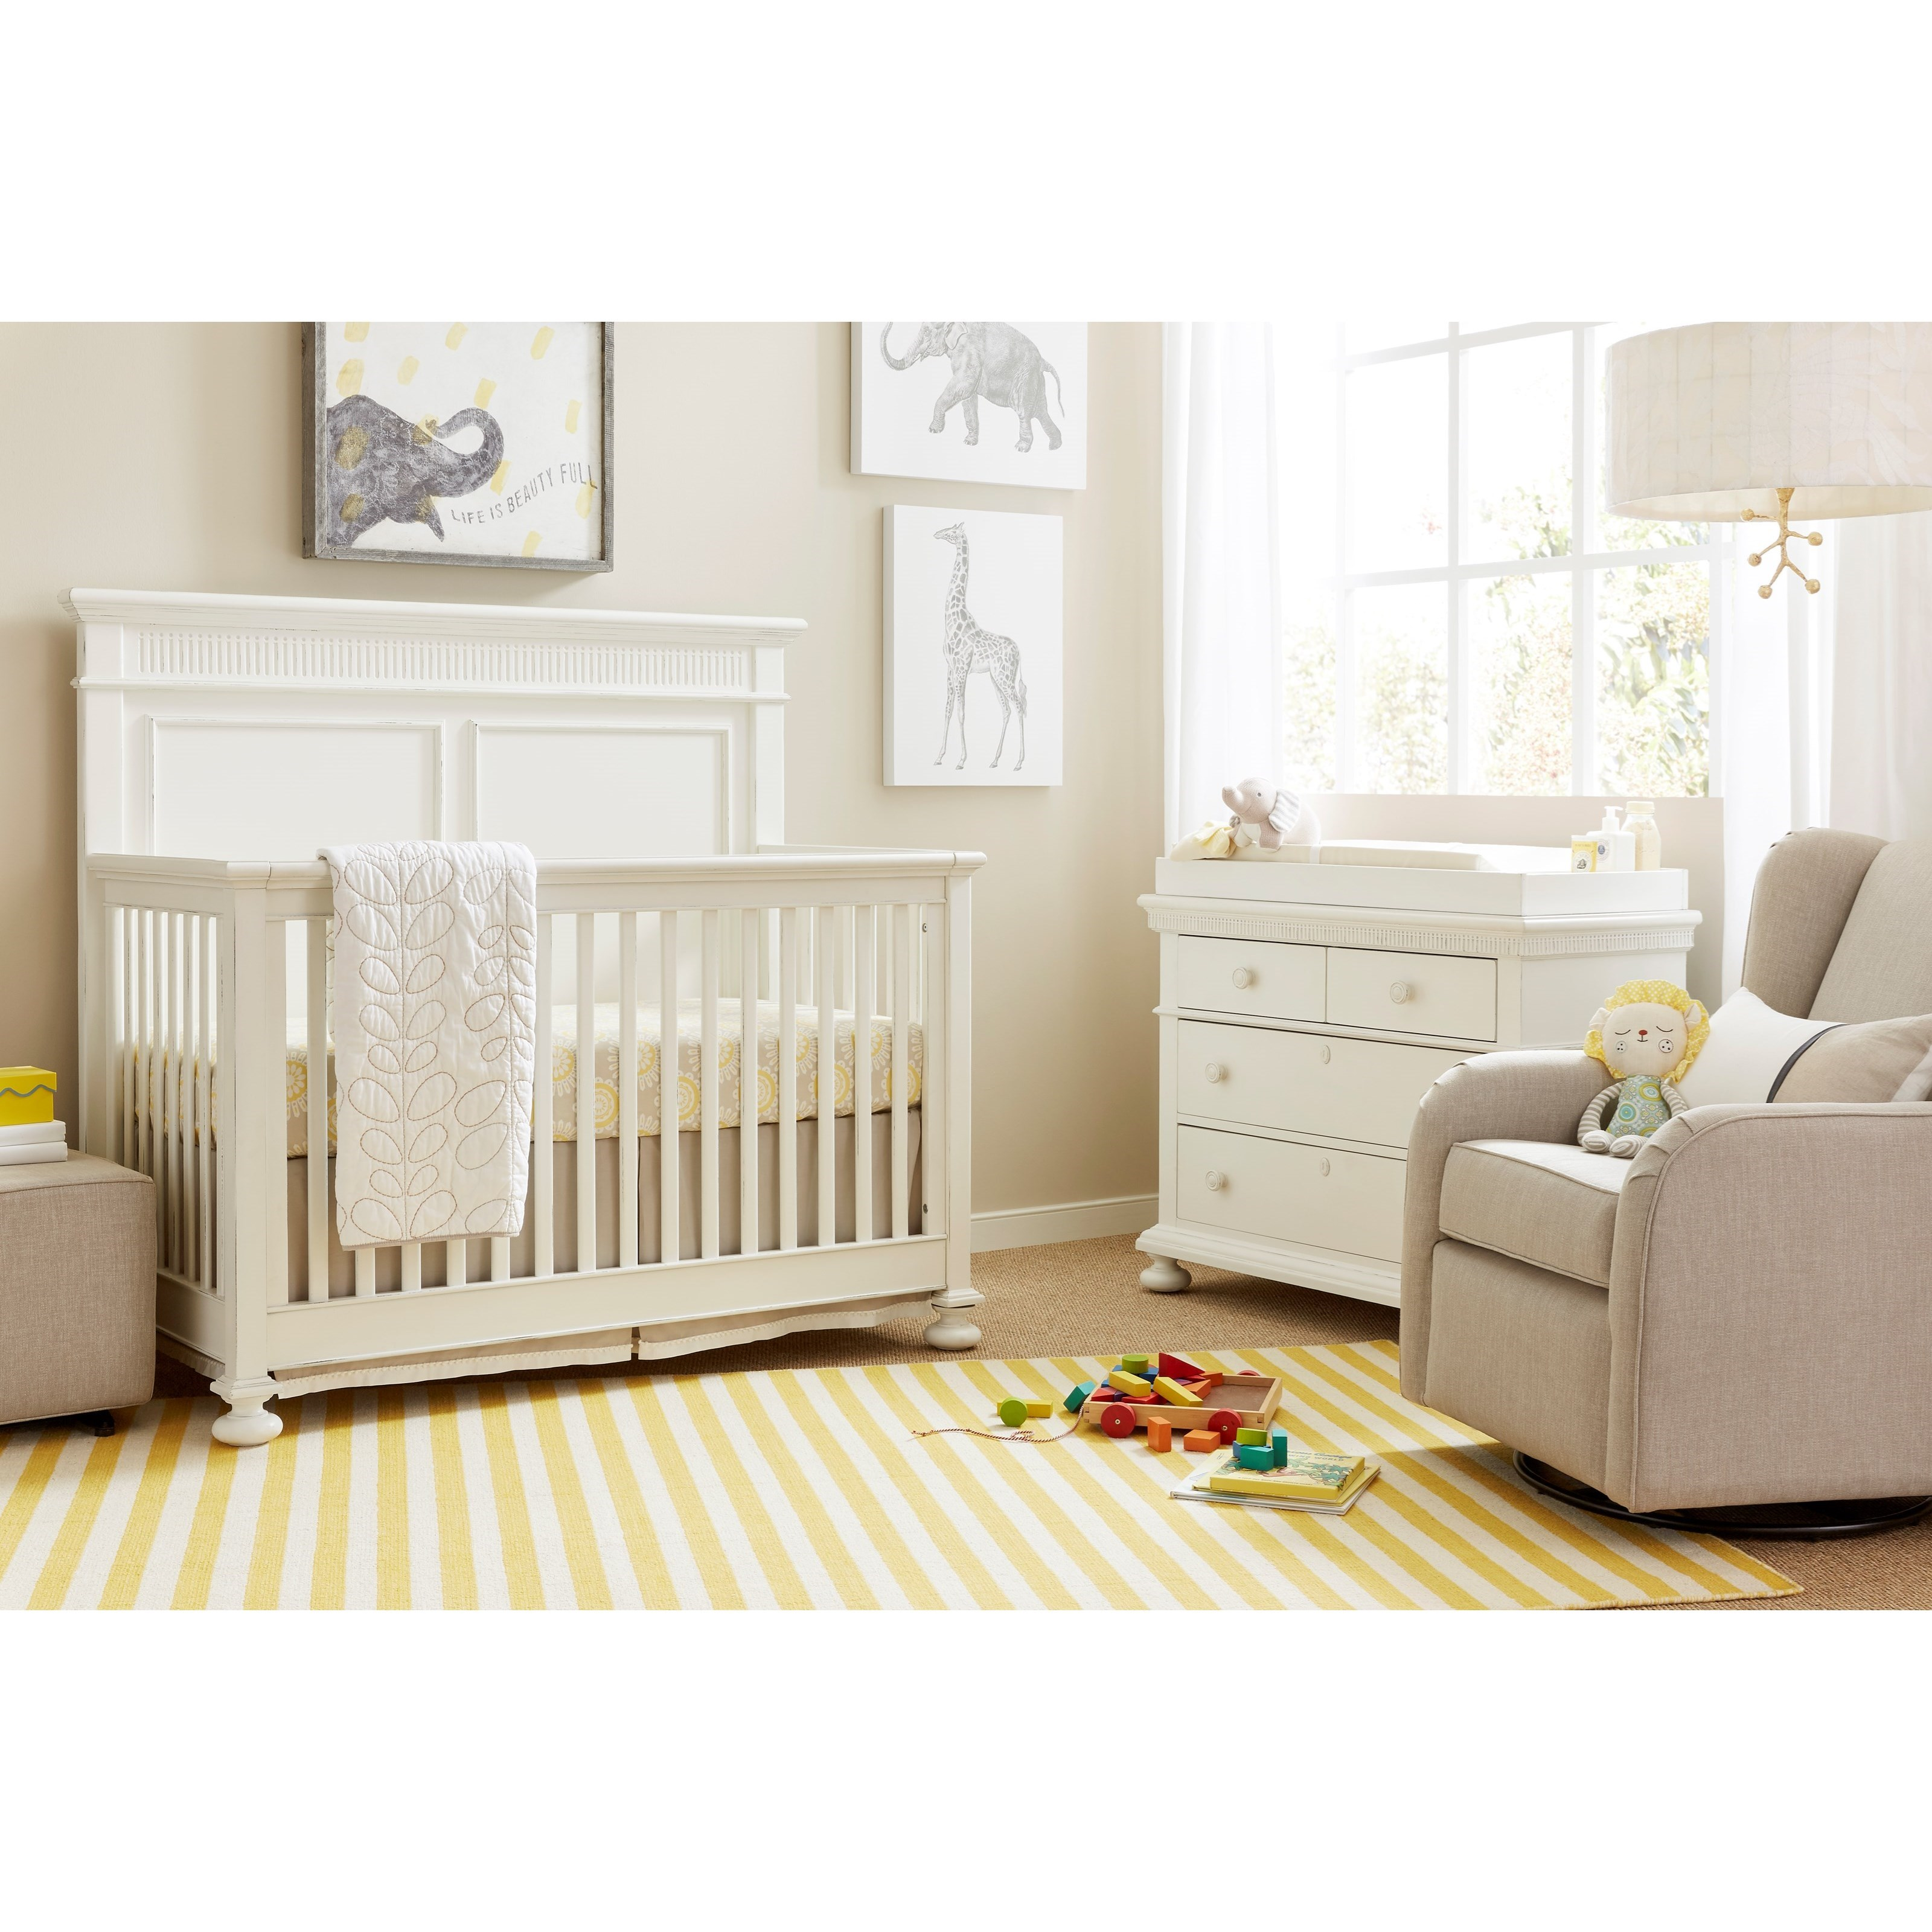 Stone & Leigh Furniture Smiling Hill Crib Bedroom Group - Item Number: 560-23 C Bedroom Group 1